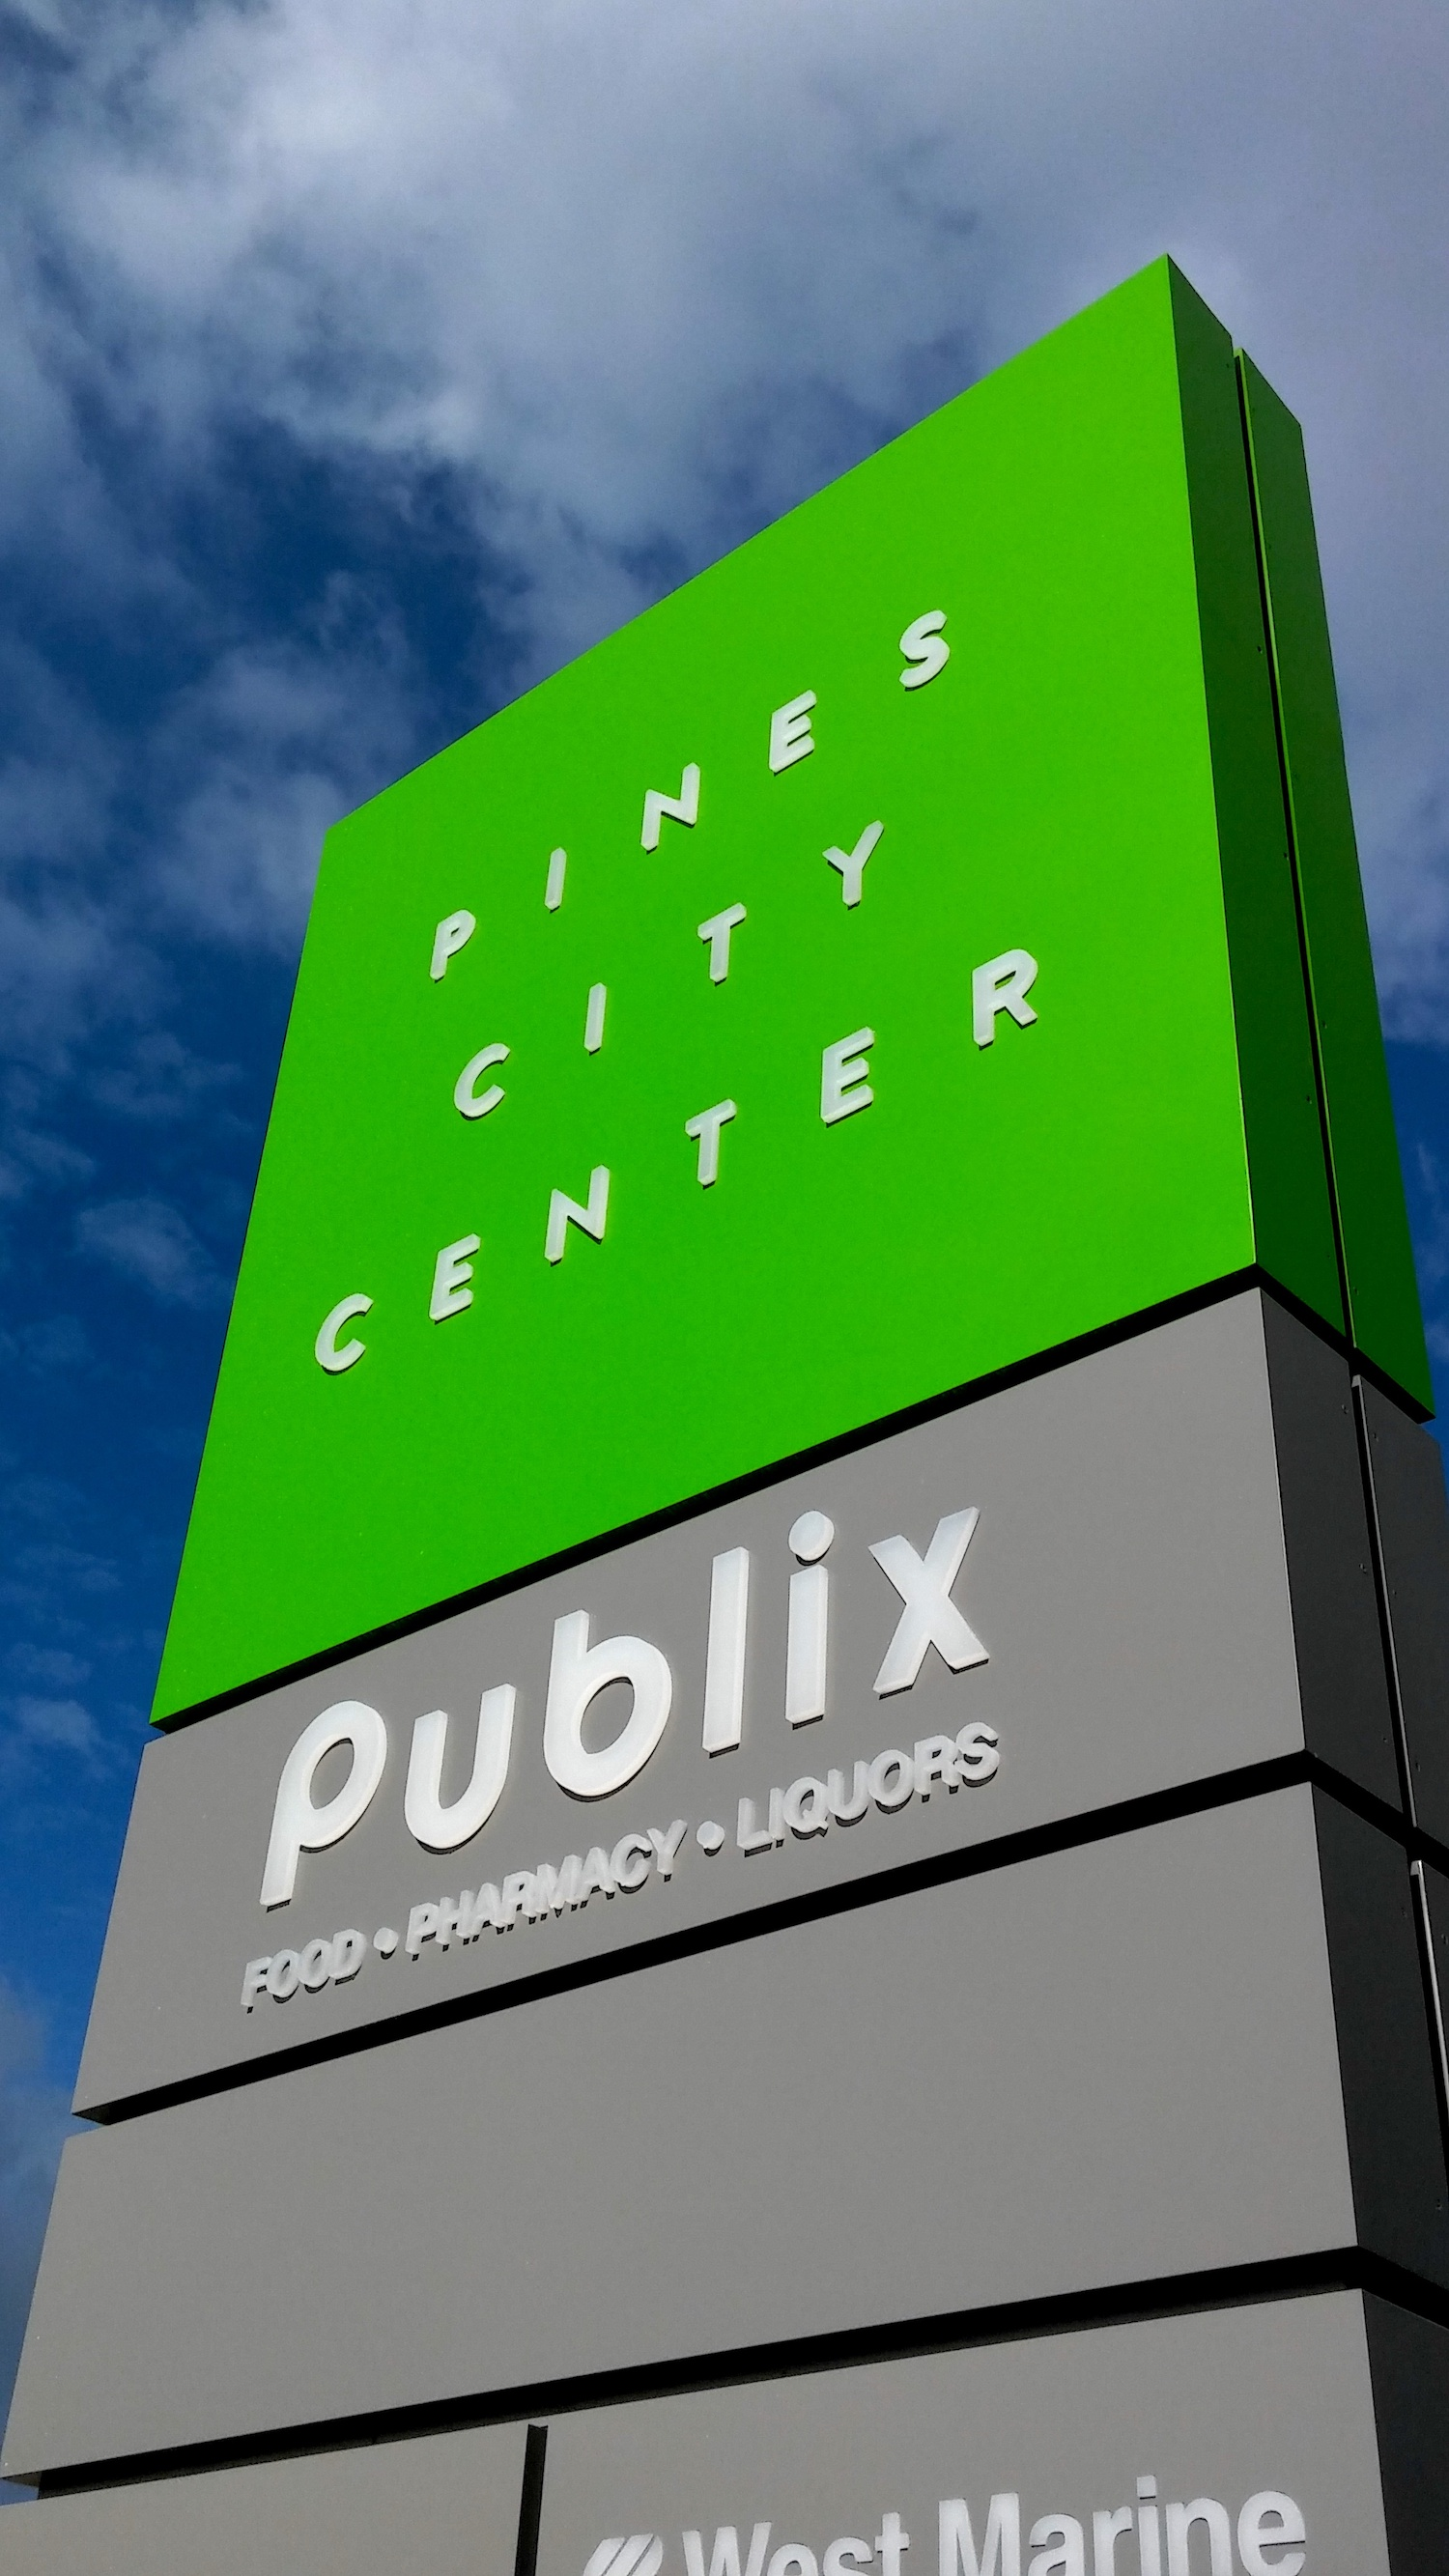 PINES CITY CENTER  - PEMBROKE PINES, FL